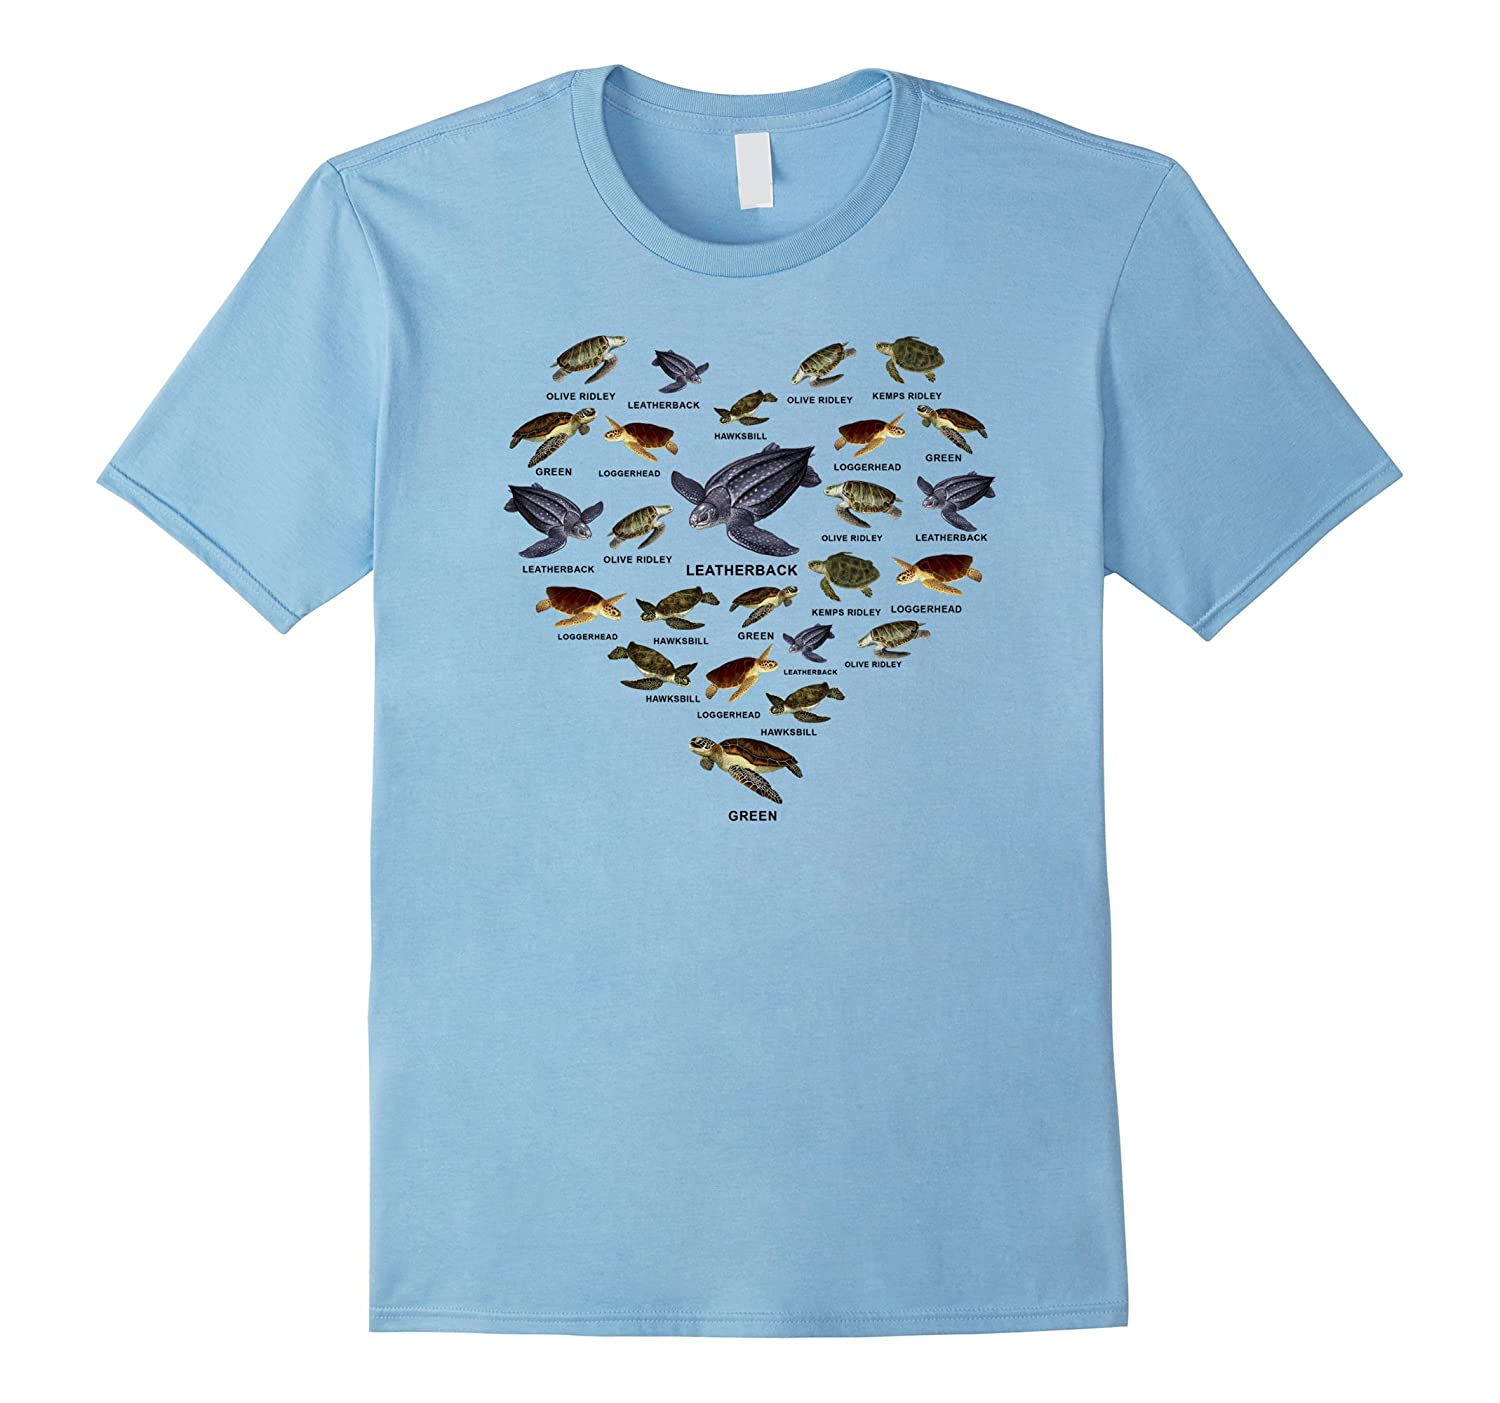 All Sea Turtles Species T Shirt Seaturtles T Shirt-TJ